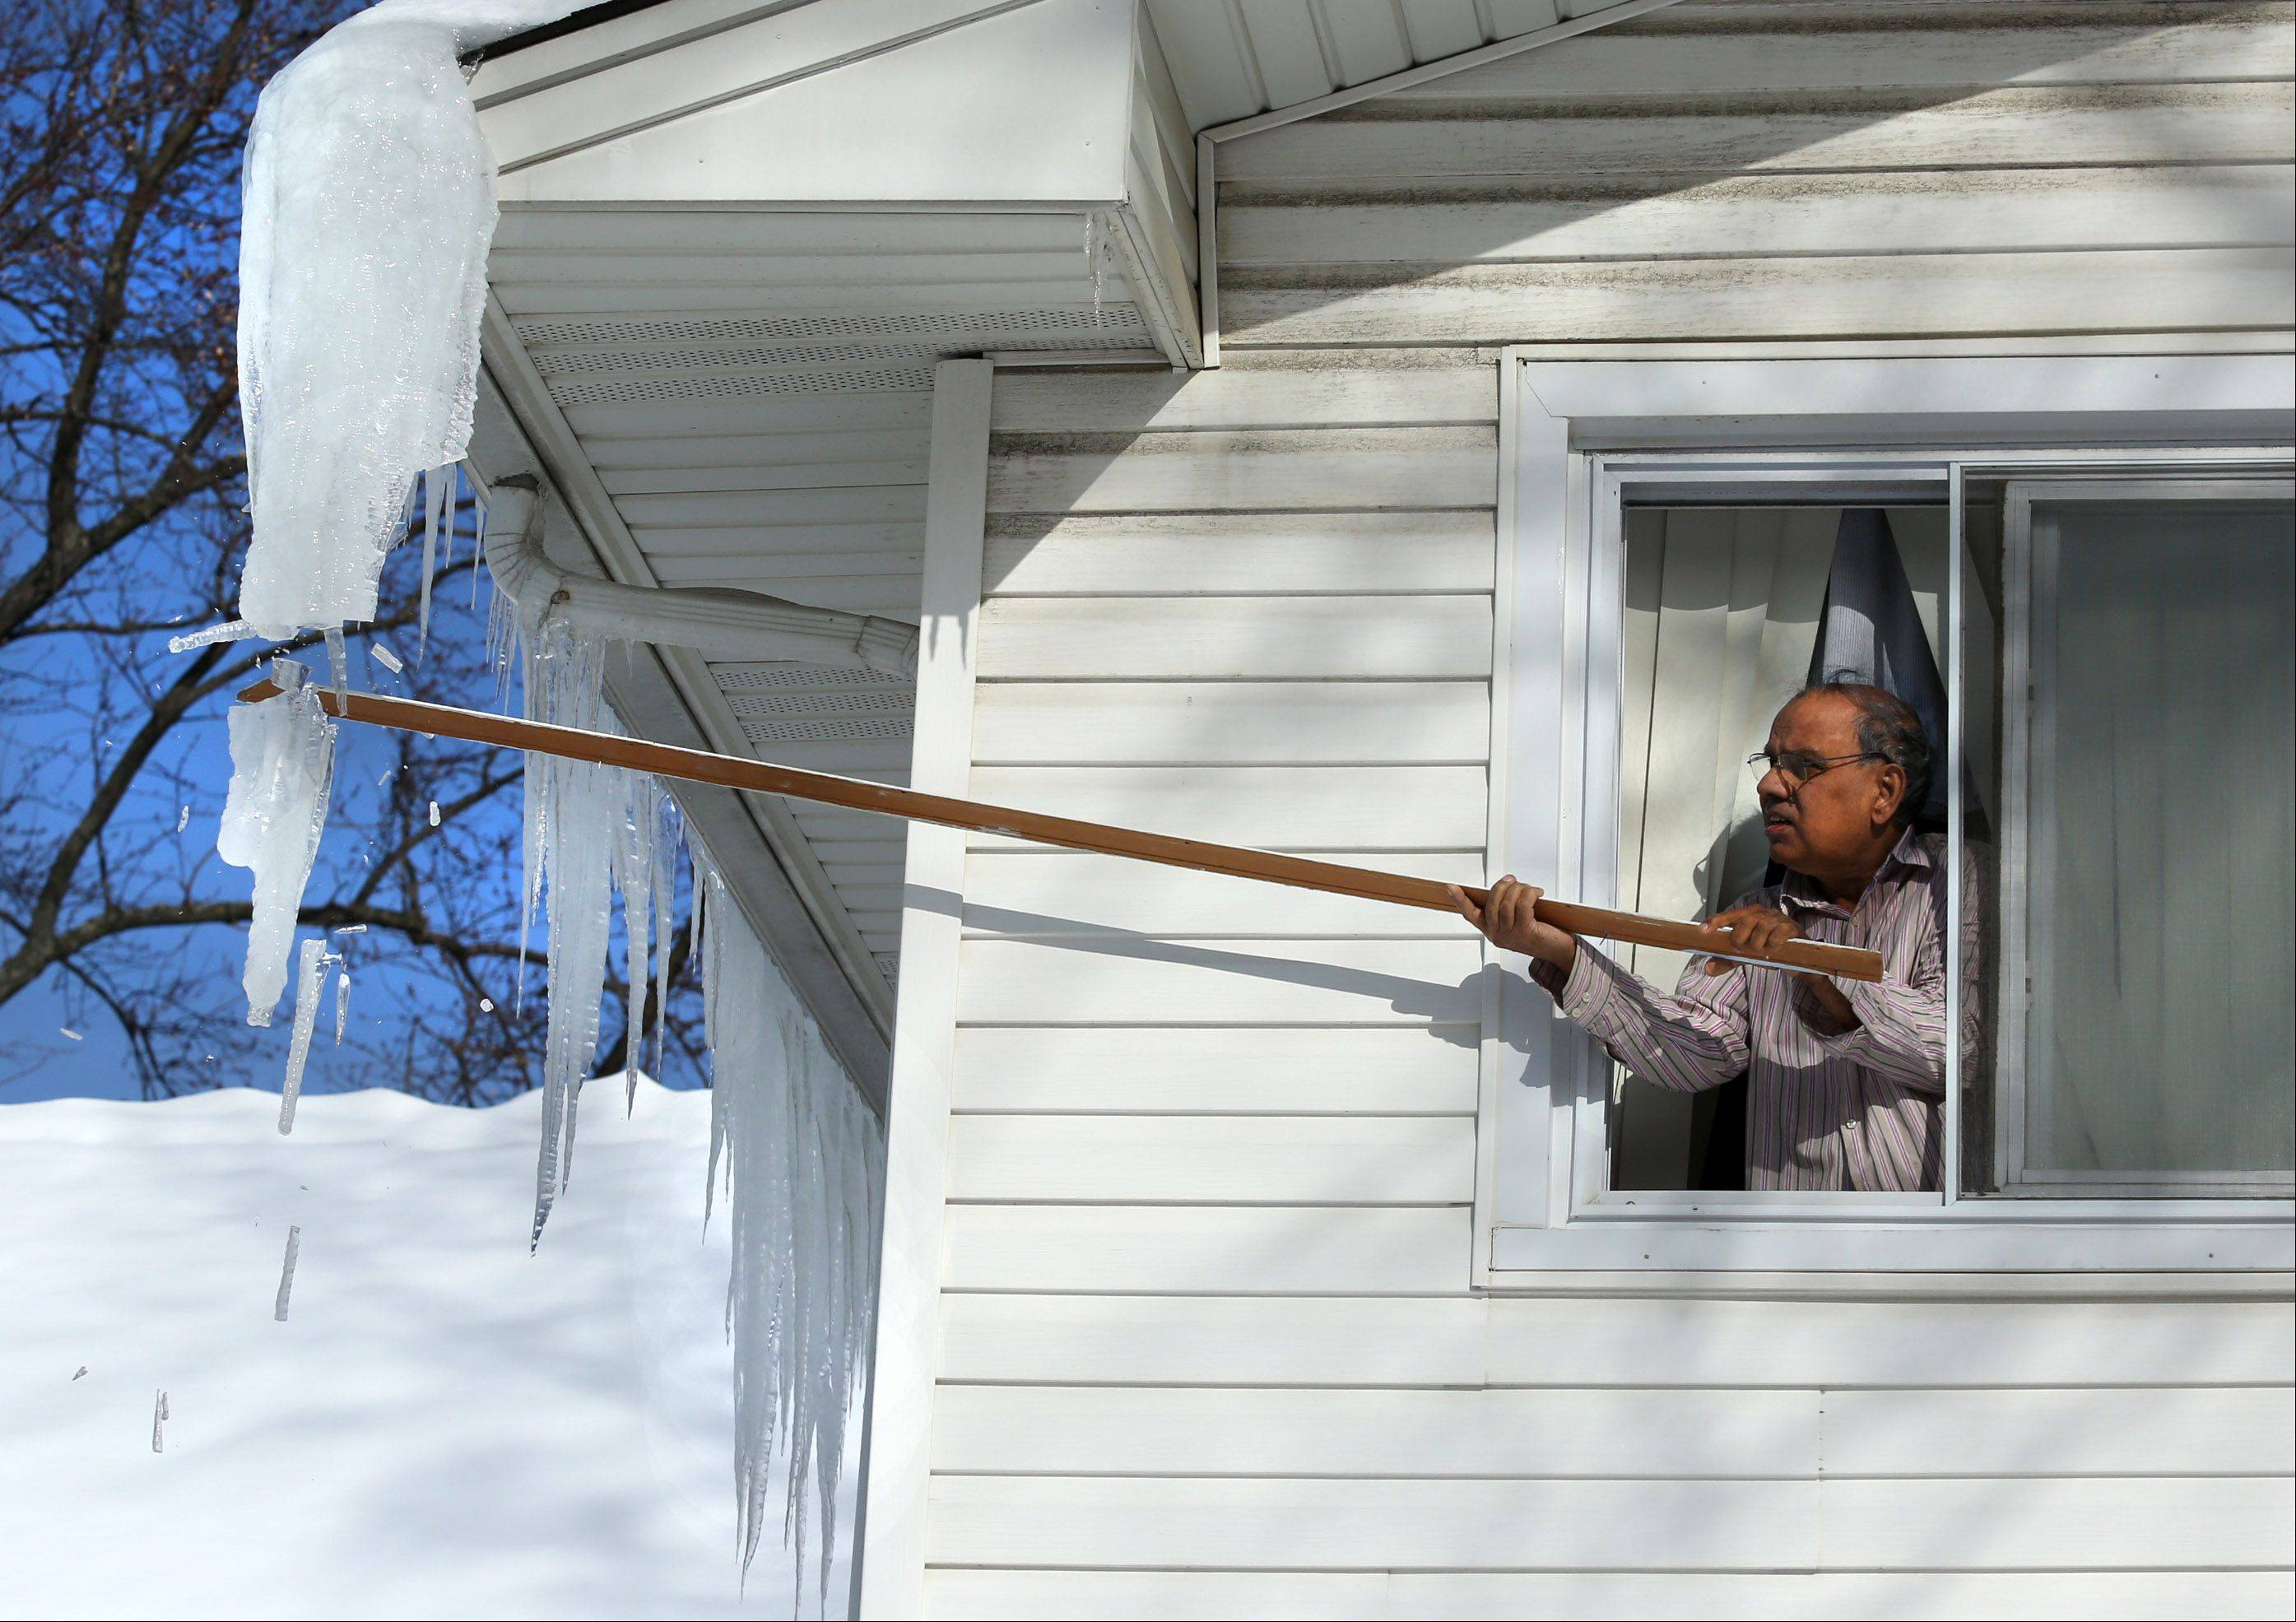 George LeClaire/gleclaire@dailyherald.com Leaning out a second floor window, Mohammad Mohyuddin uses a stick to knock icicles off of his home�s roof in Rolling Meadows on Wednesday.